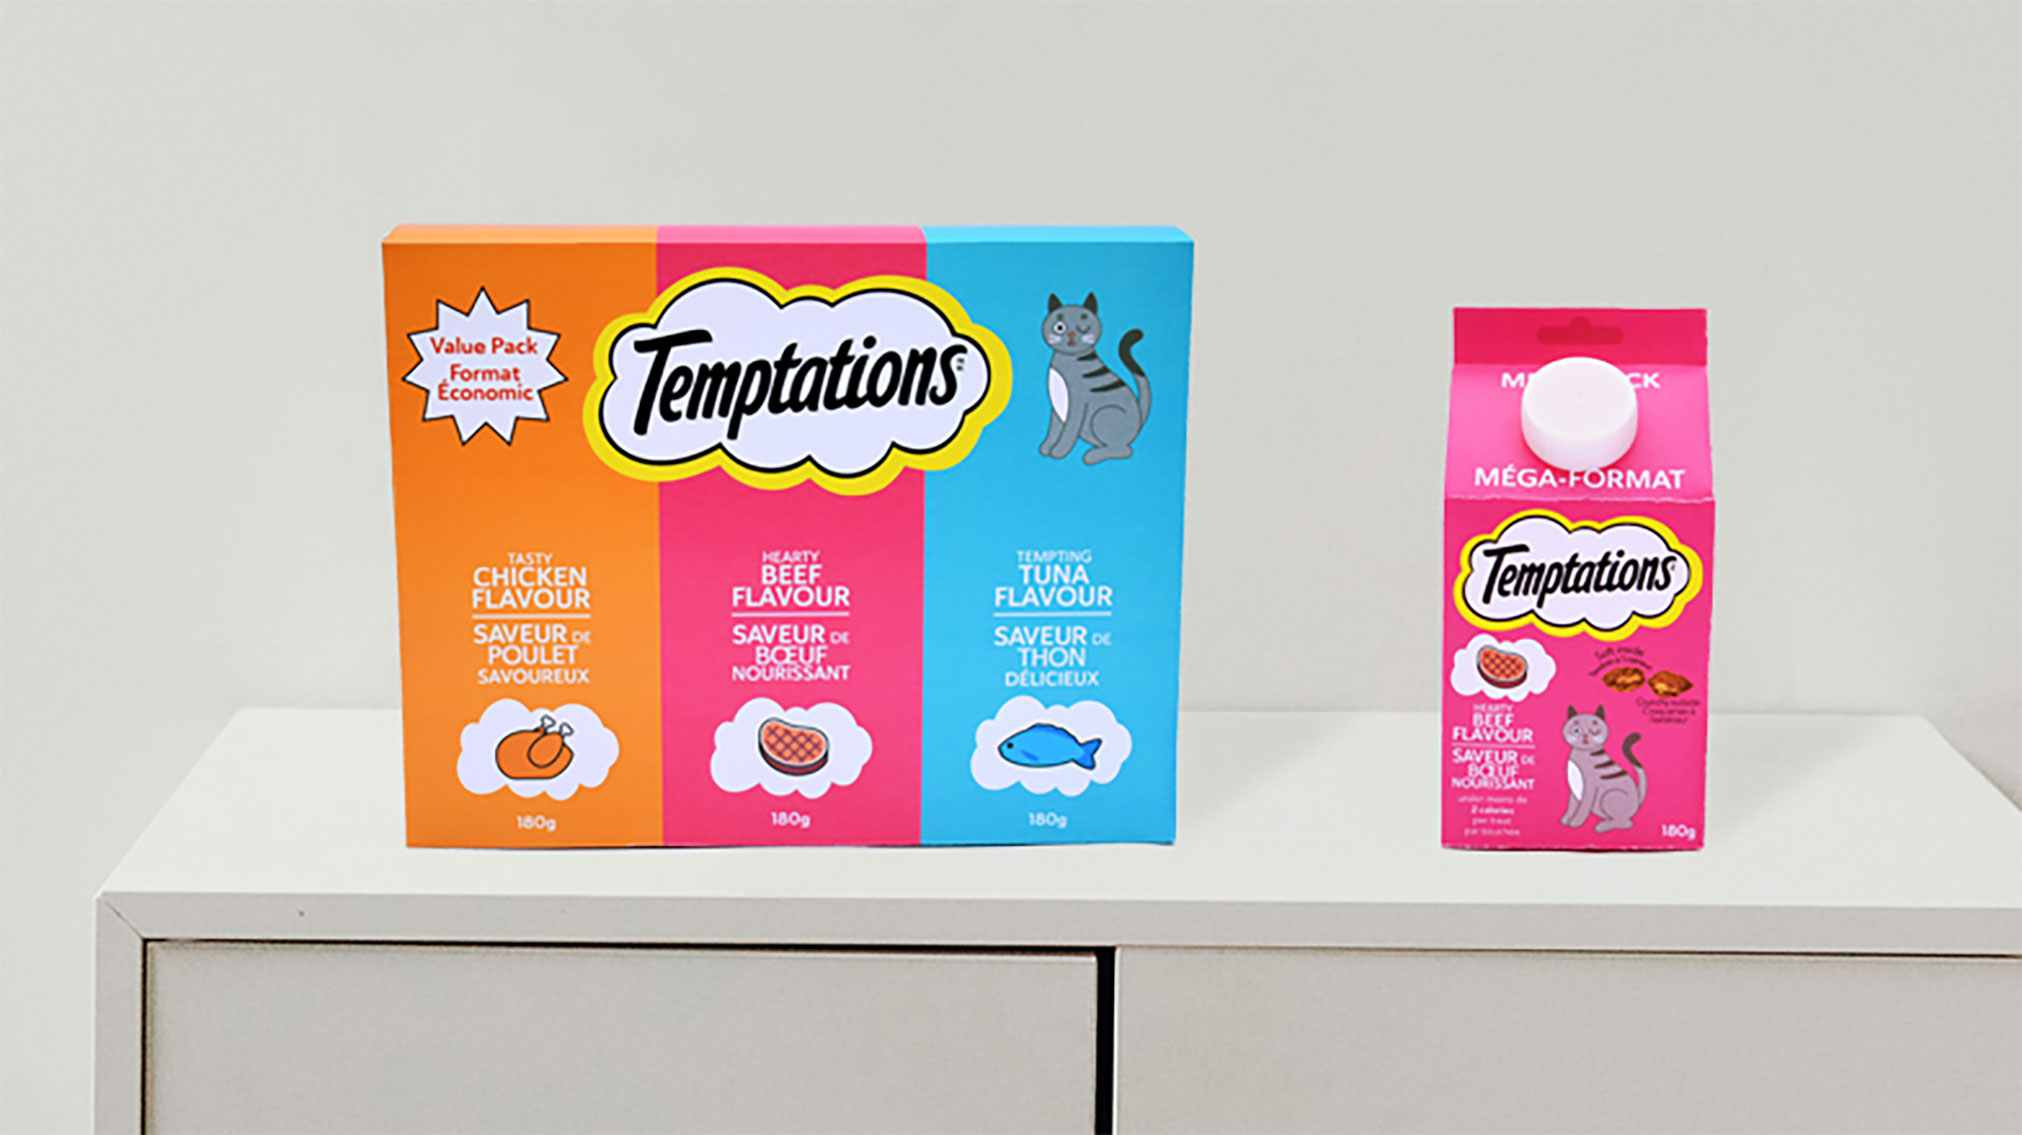 Recently I have been interested in sustainability and I felt bothered by the use of plastic in pet food packaging. That inspired me to re-designed Temptations packaging to use paperboard instead.